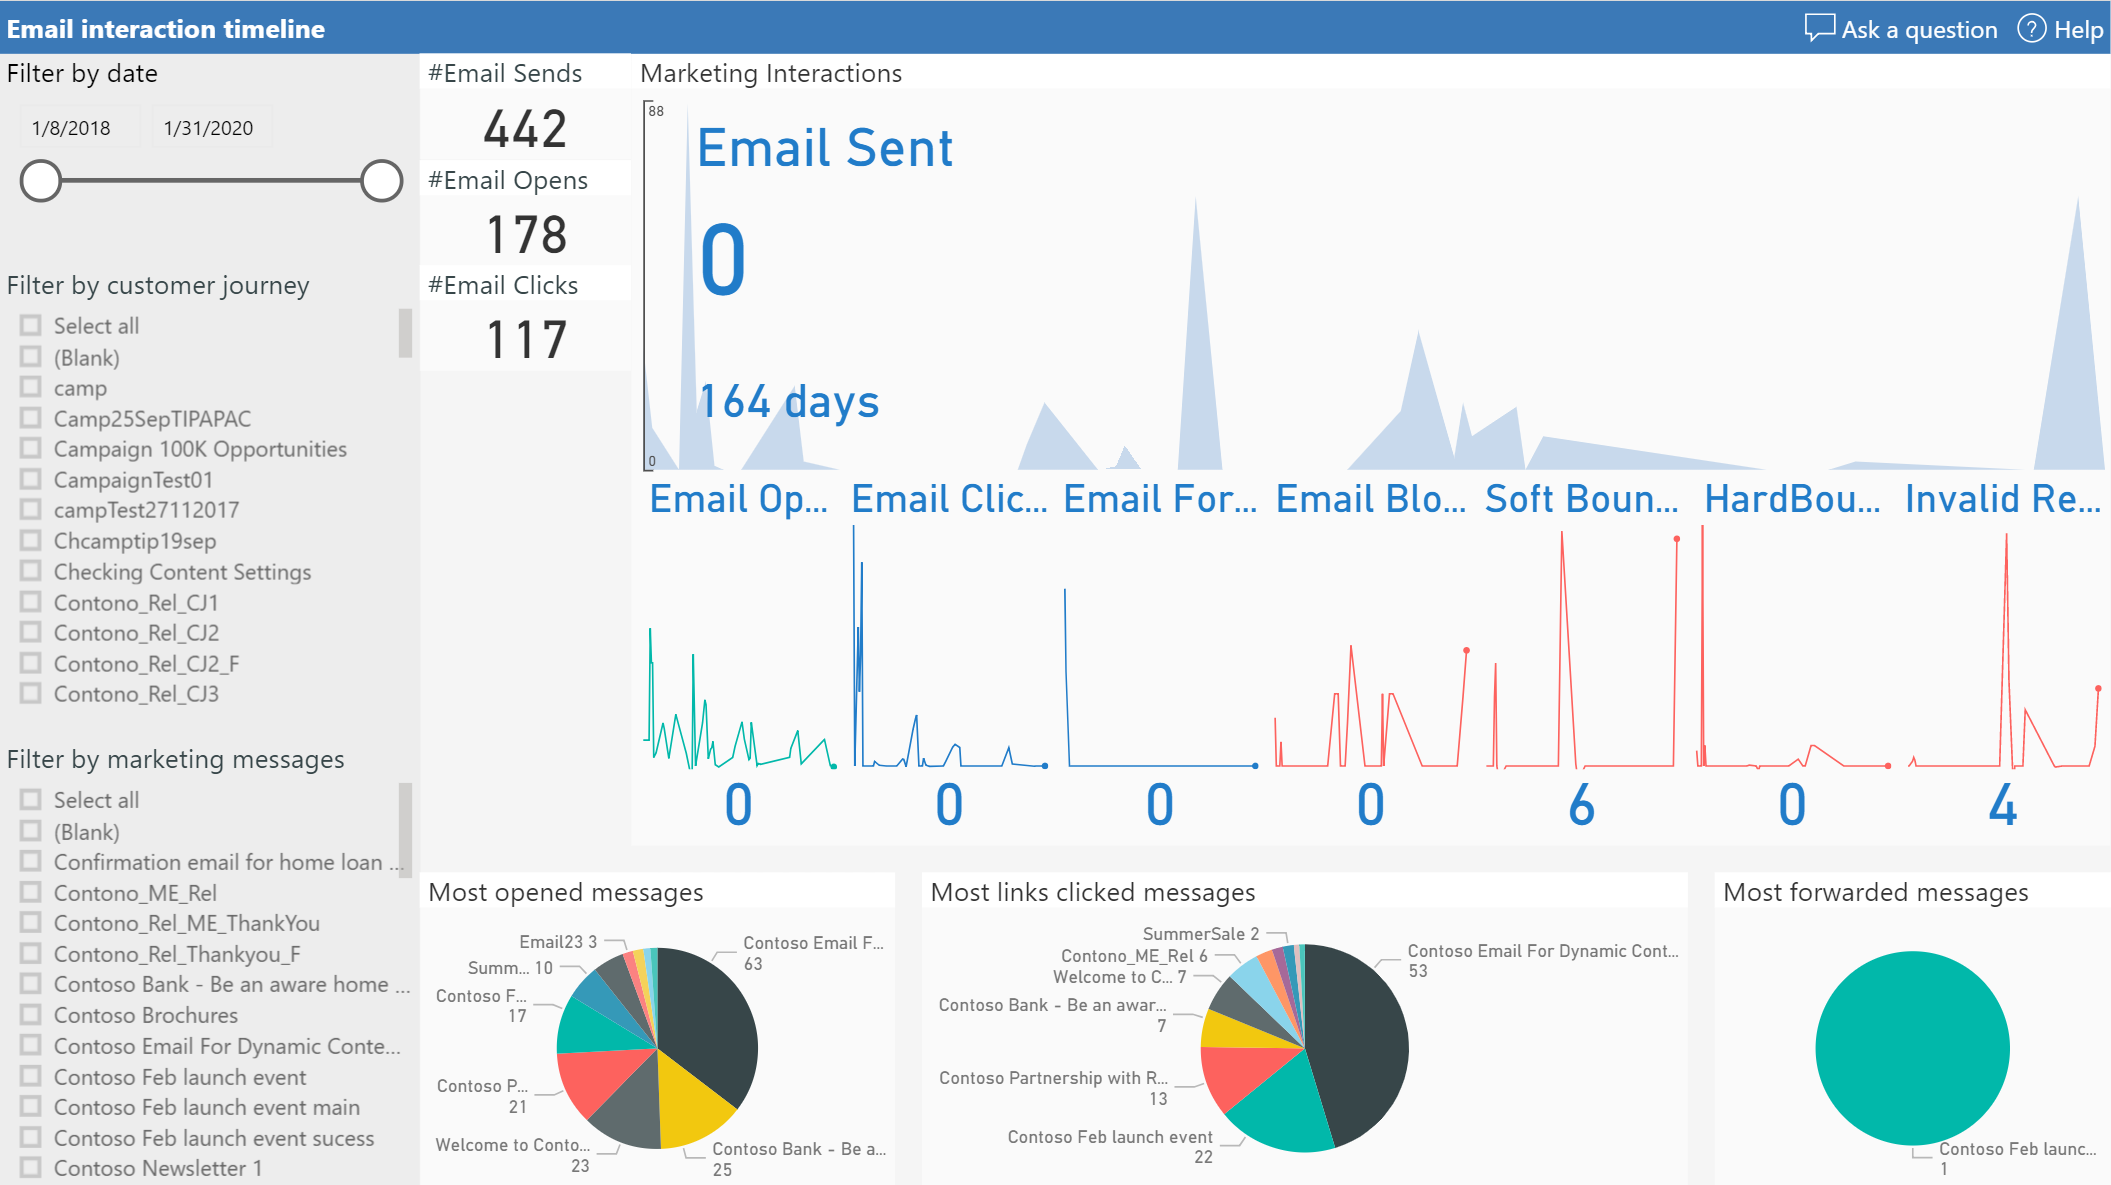 Email marketing interaction timeline